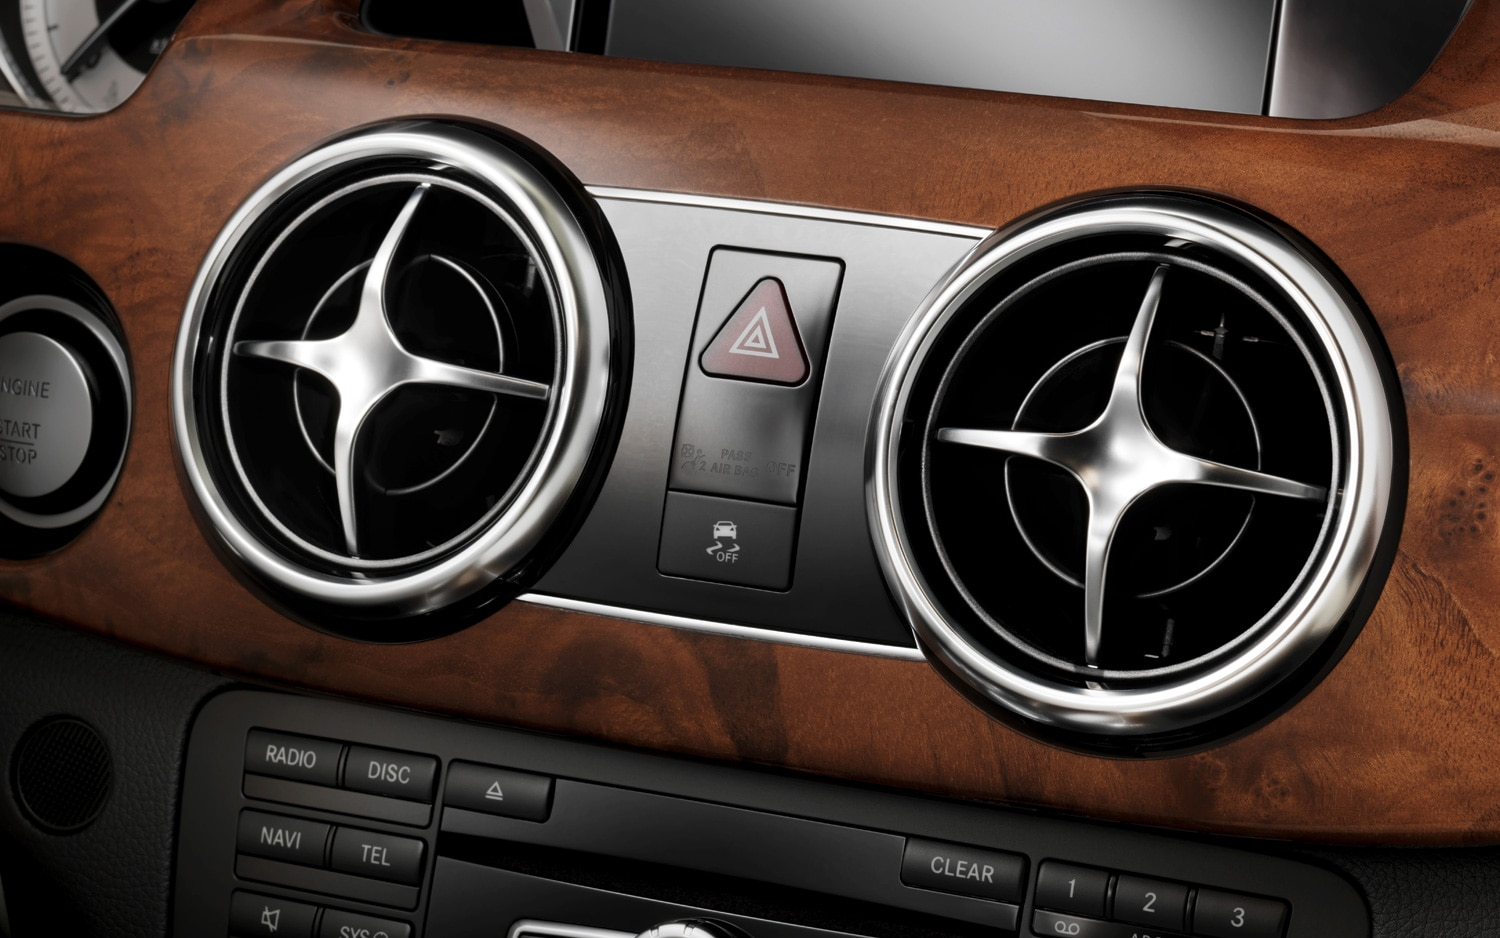 All Types glk amg : 2013 Mercedes-Benz GLK Updated With Facelift, More Power, New ...